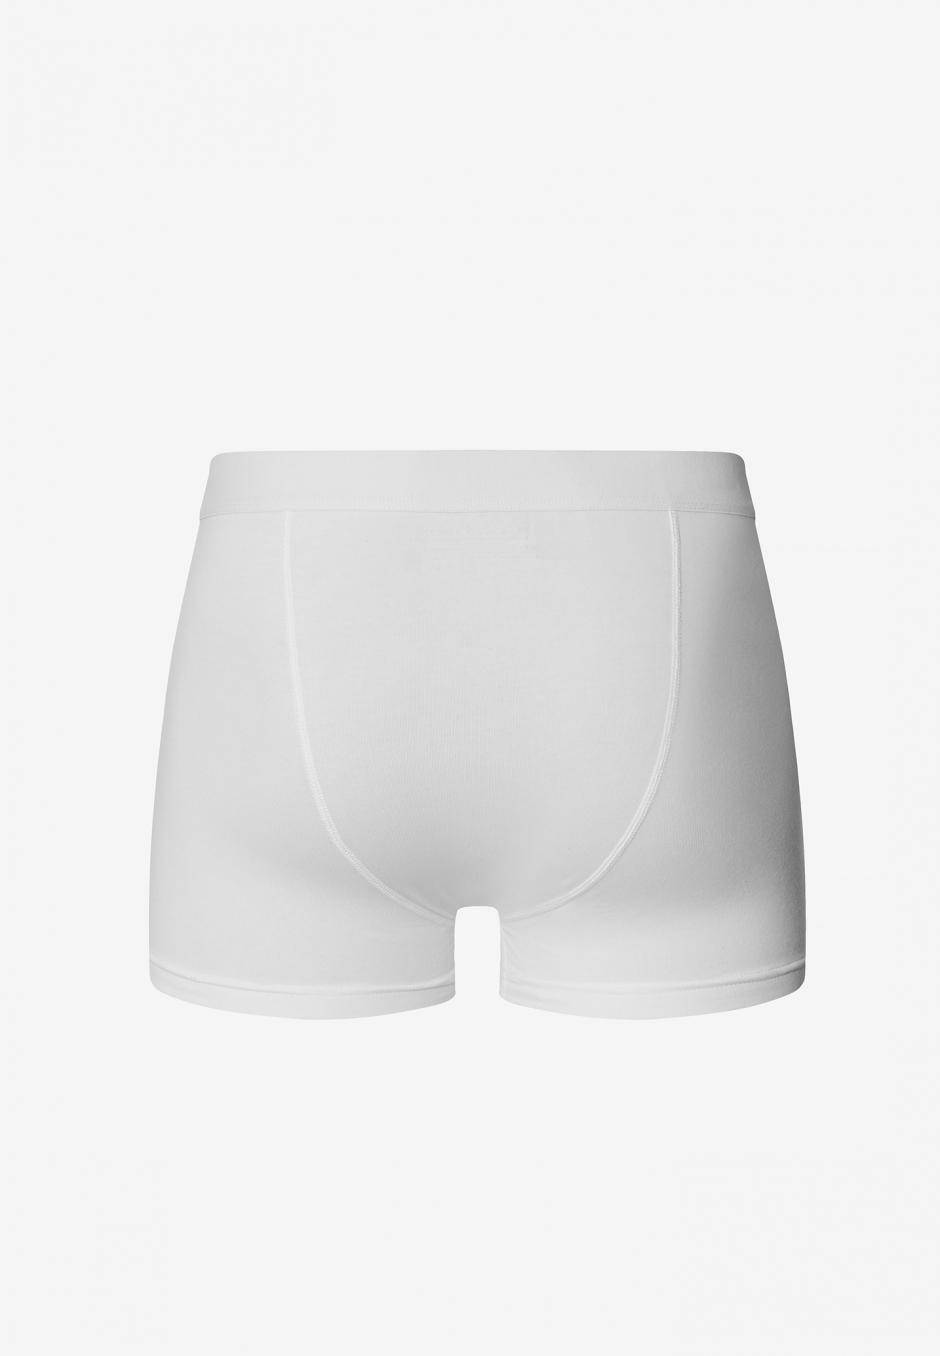 Bread & Boxers Boxer Brief 3-pack